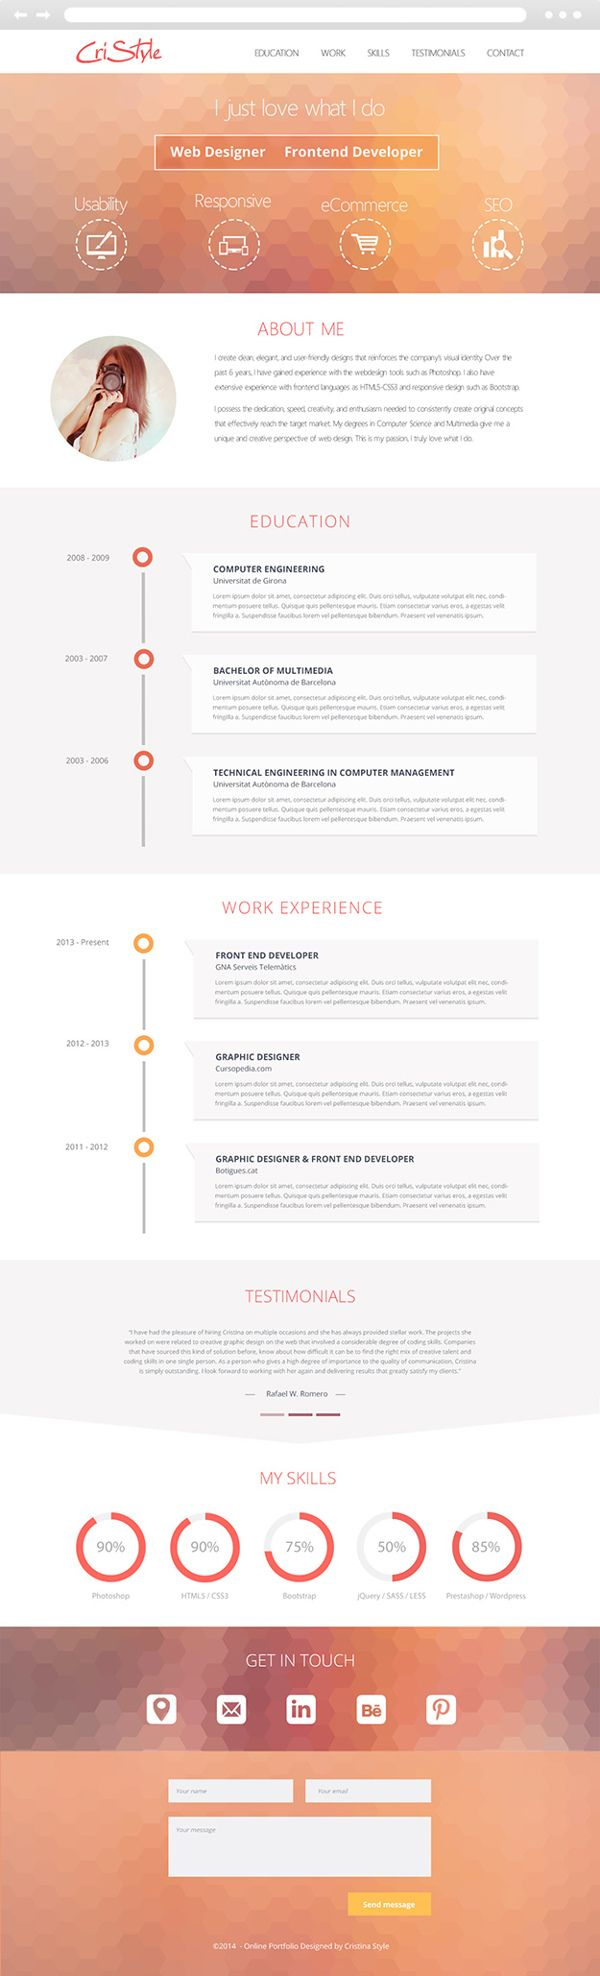 My visual resume - Flat UI Design by Cristina Stela, via Behance